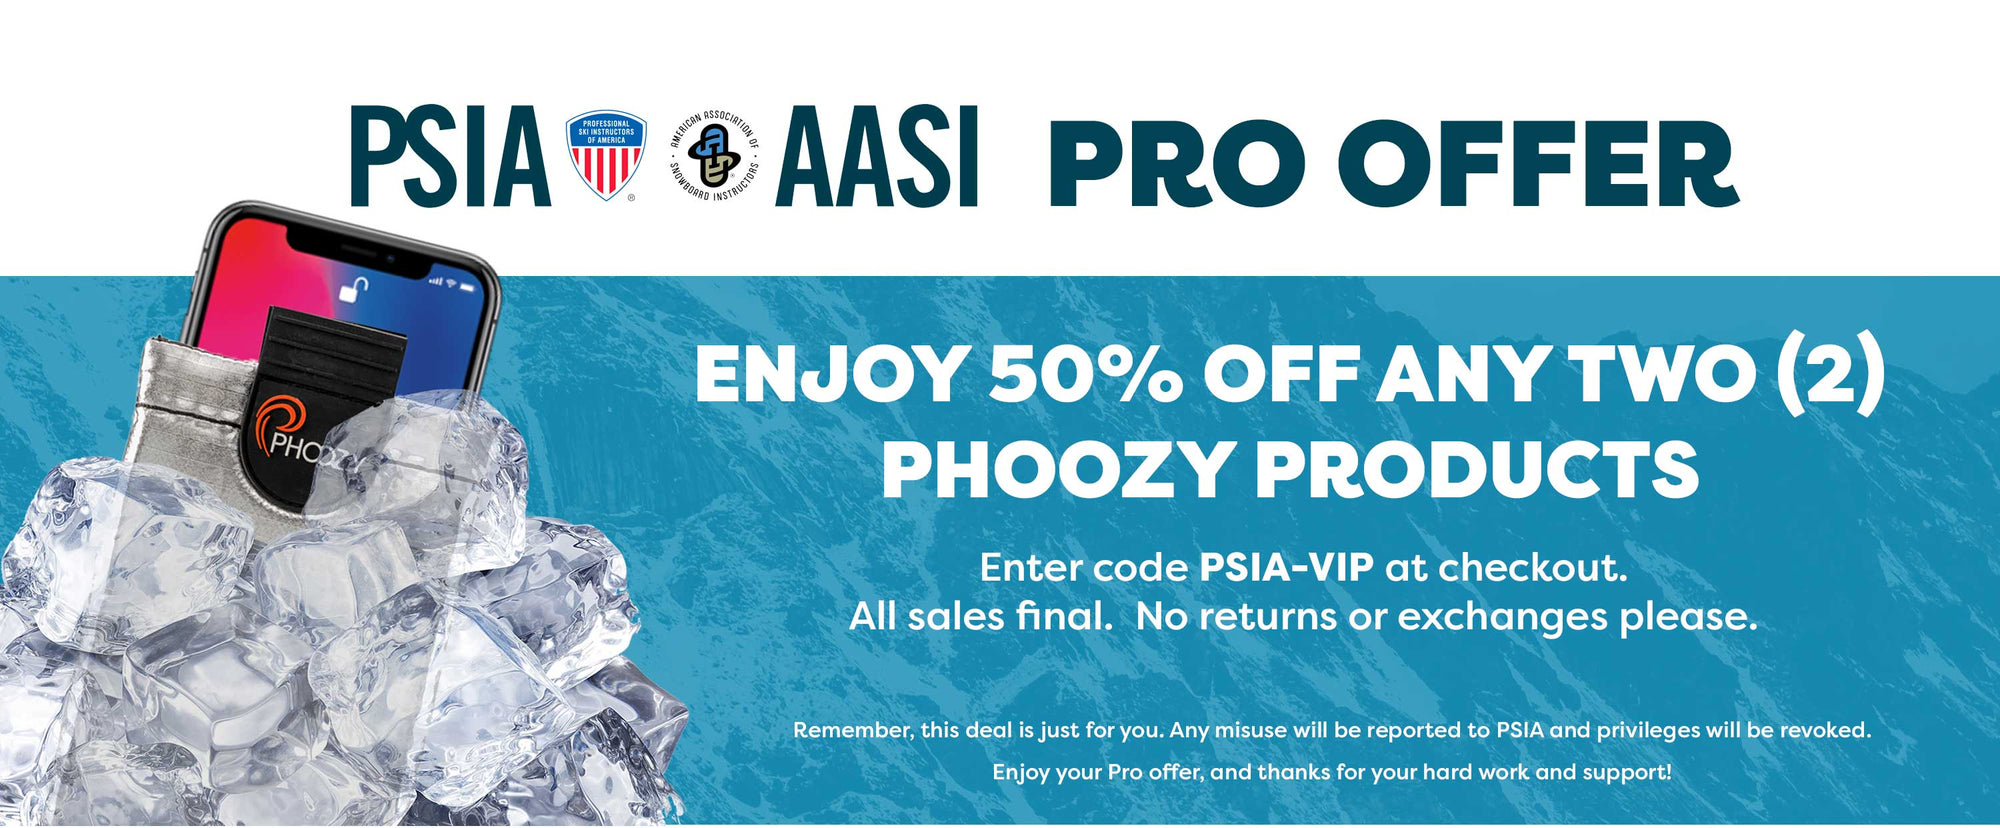 PSIA-AASI Pro Offer